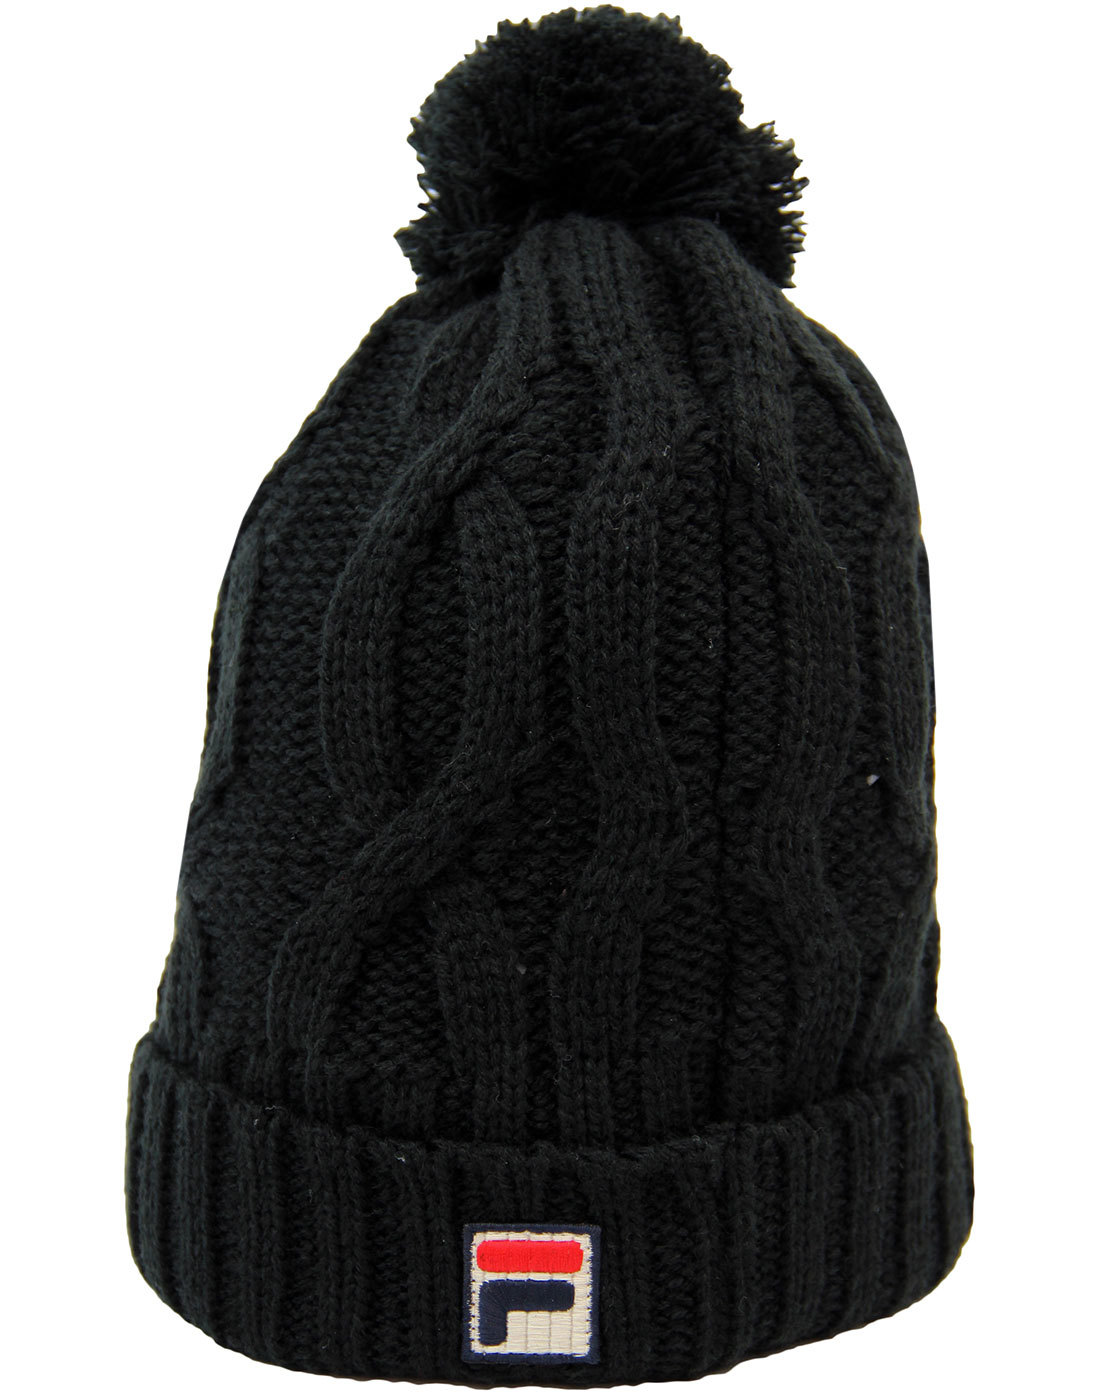 Calapai FILA VINTAGE Retro Cable Knit Bobble Hat